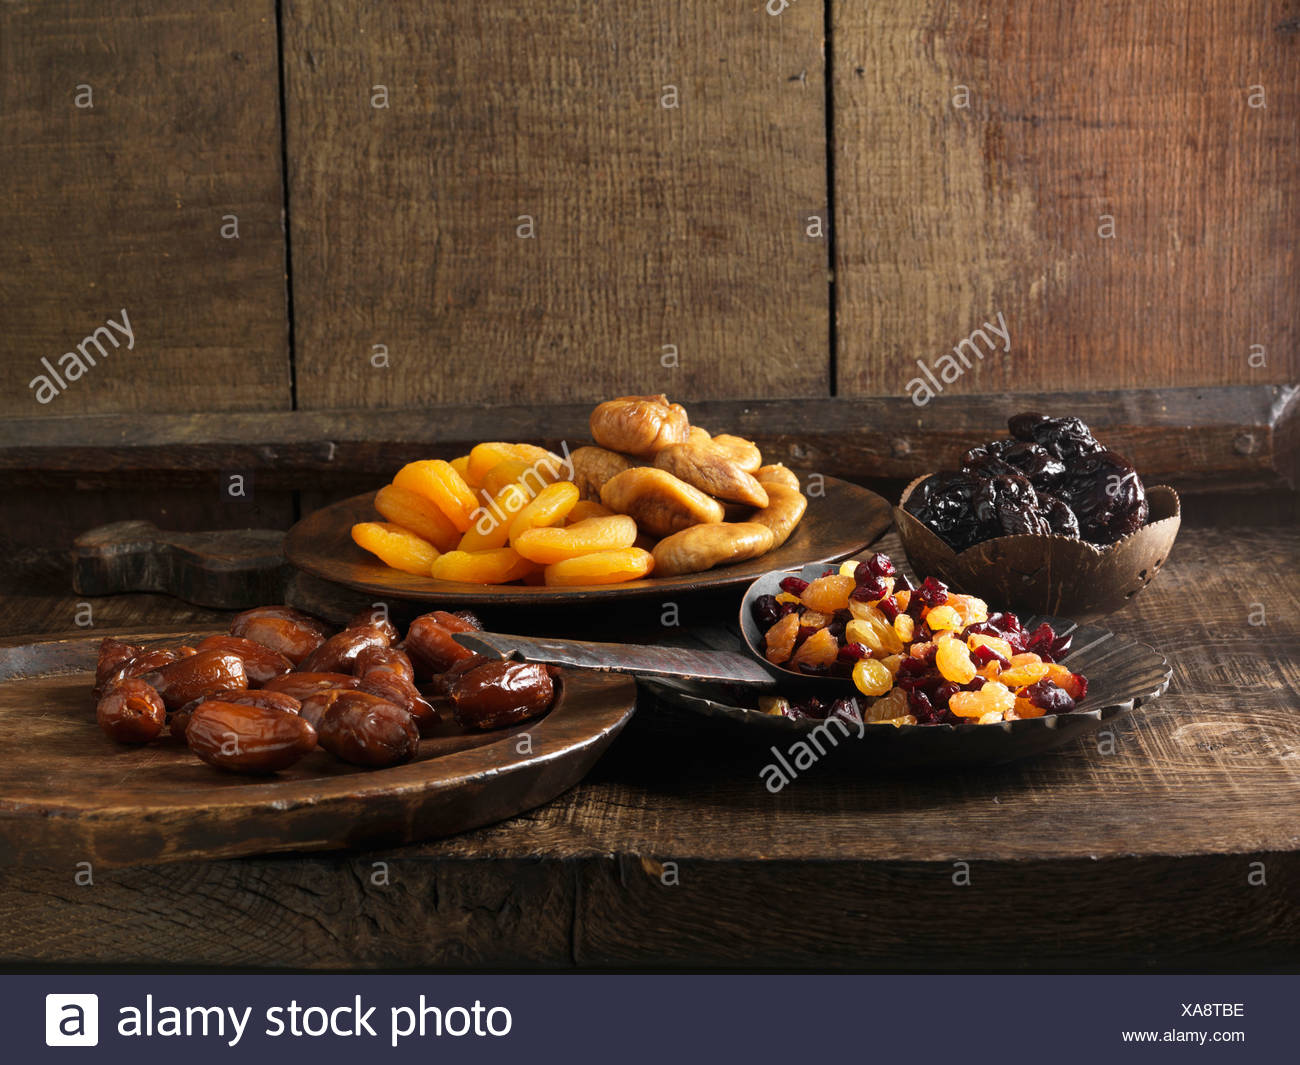 Dried fruits on assorted serving plates - Stock Image